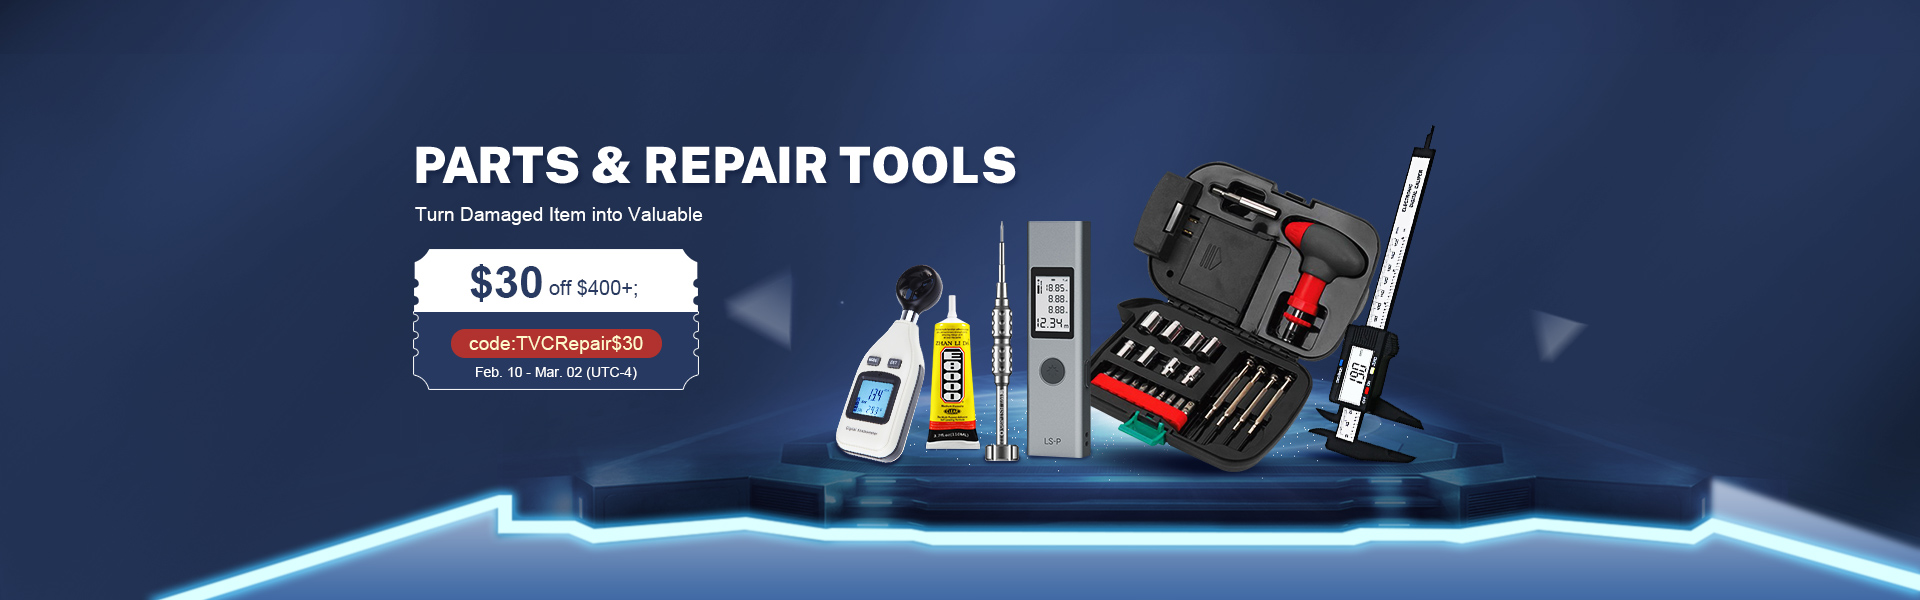 Parts & Repair Tools $30 off $400+-TVC-Mall.com